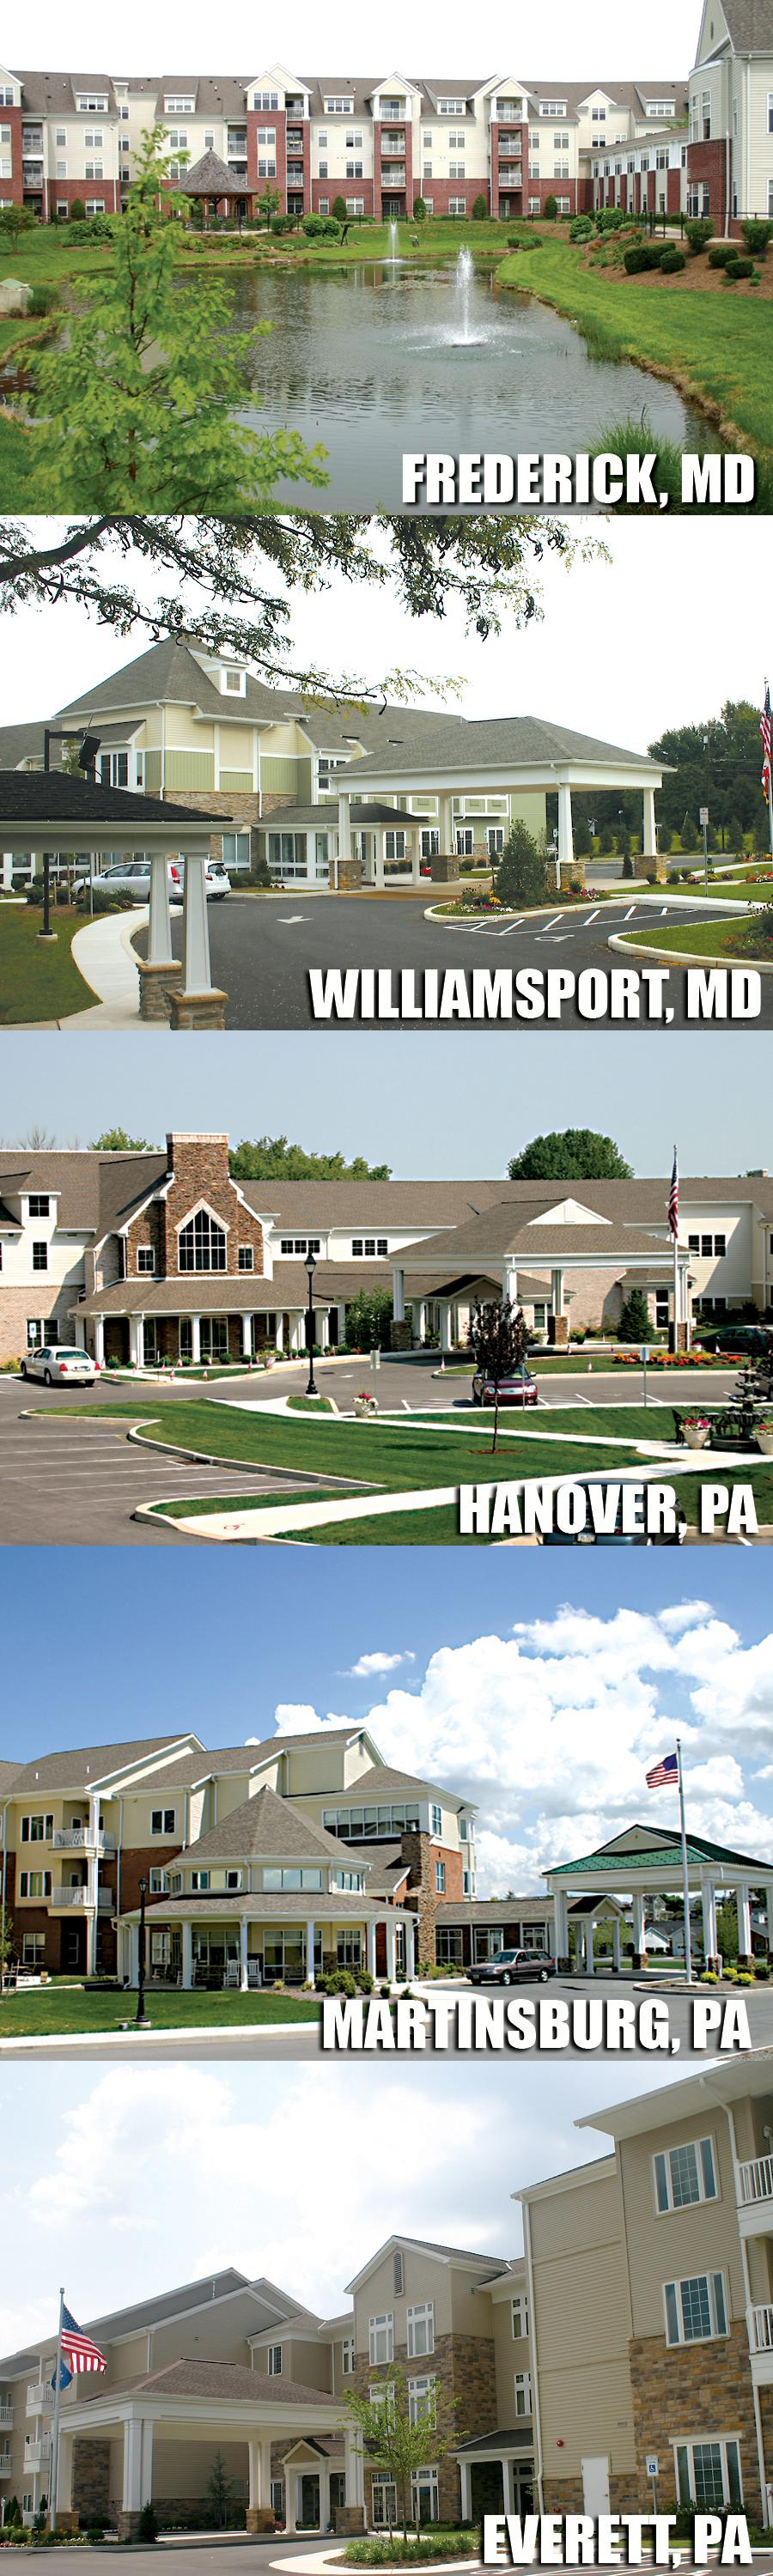 Homewood Locations - Frederick, MD, Williamsport, MD, Hanover, PA, Martinsburg, PA, Everett, PA